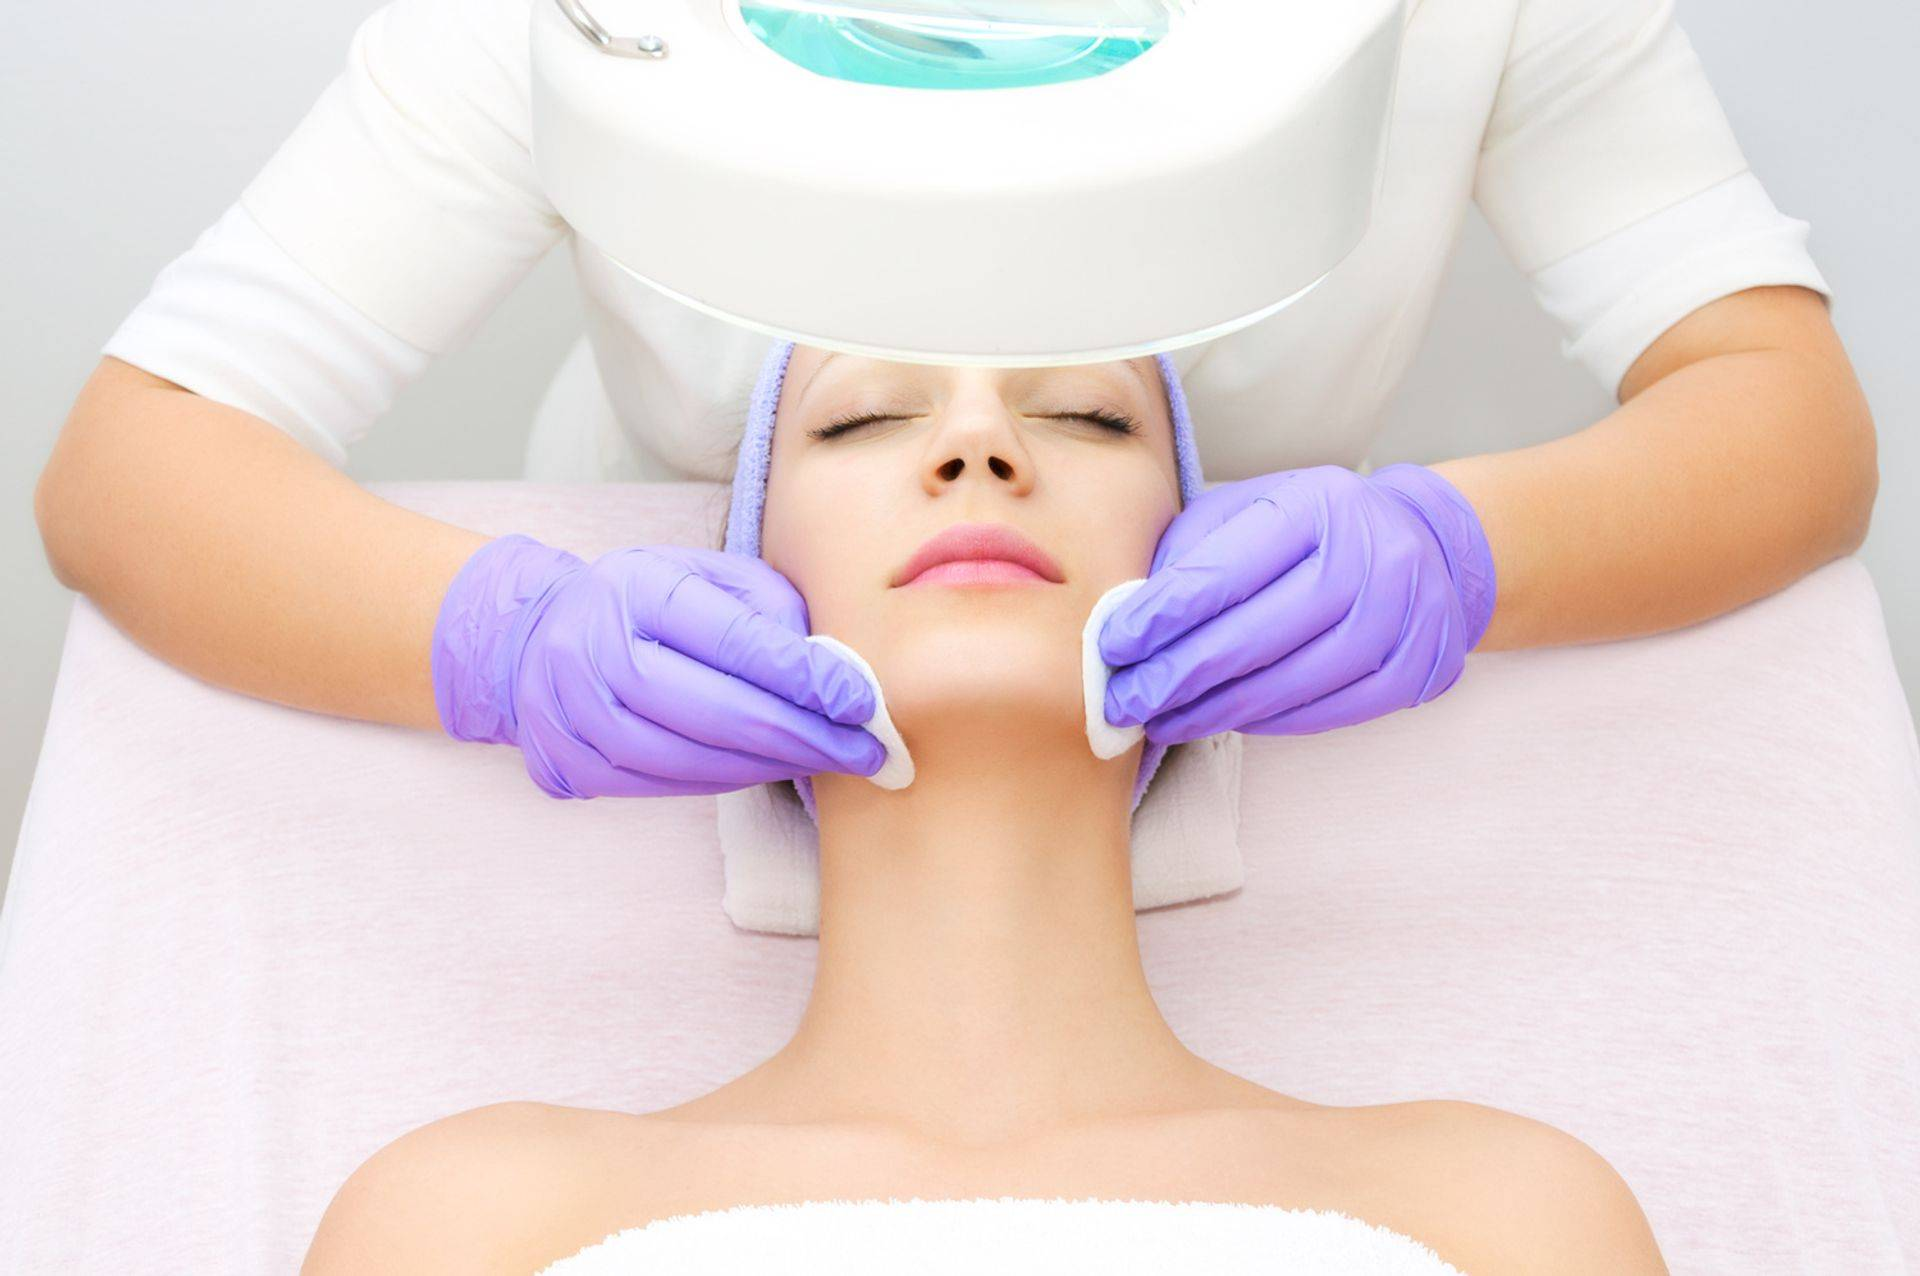 From micro-dermabrasion, clinical peels & professional skin needling to classical European Facial treatments, afull range of treatments are available & delivered with care and an experienced hand.